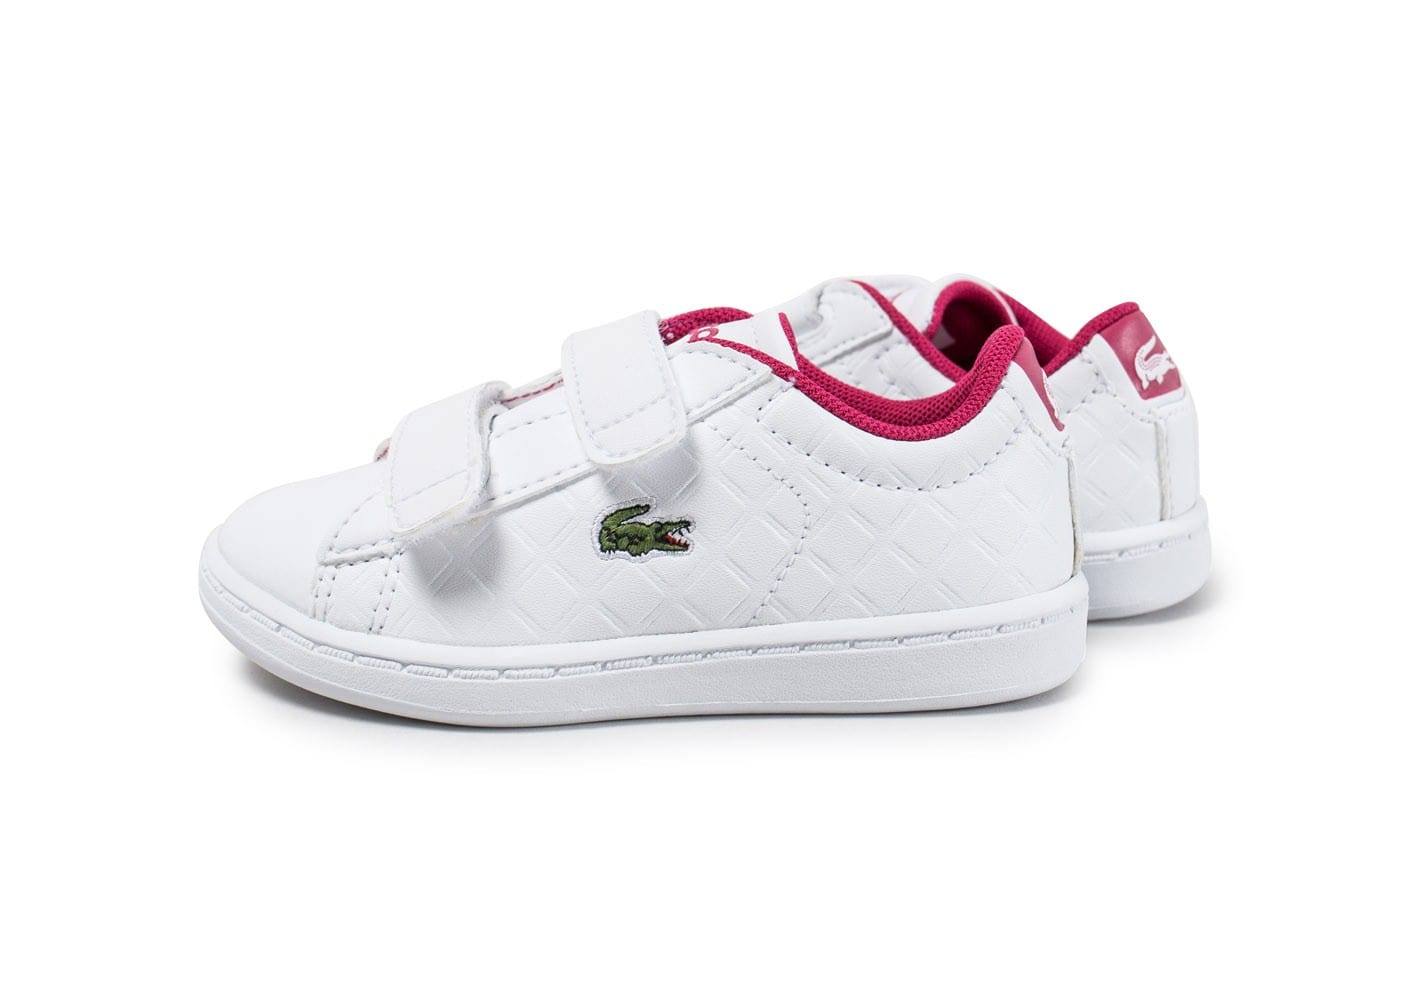 Lacoste Bb Carnaby Evo bleu, baskets mode enfant